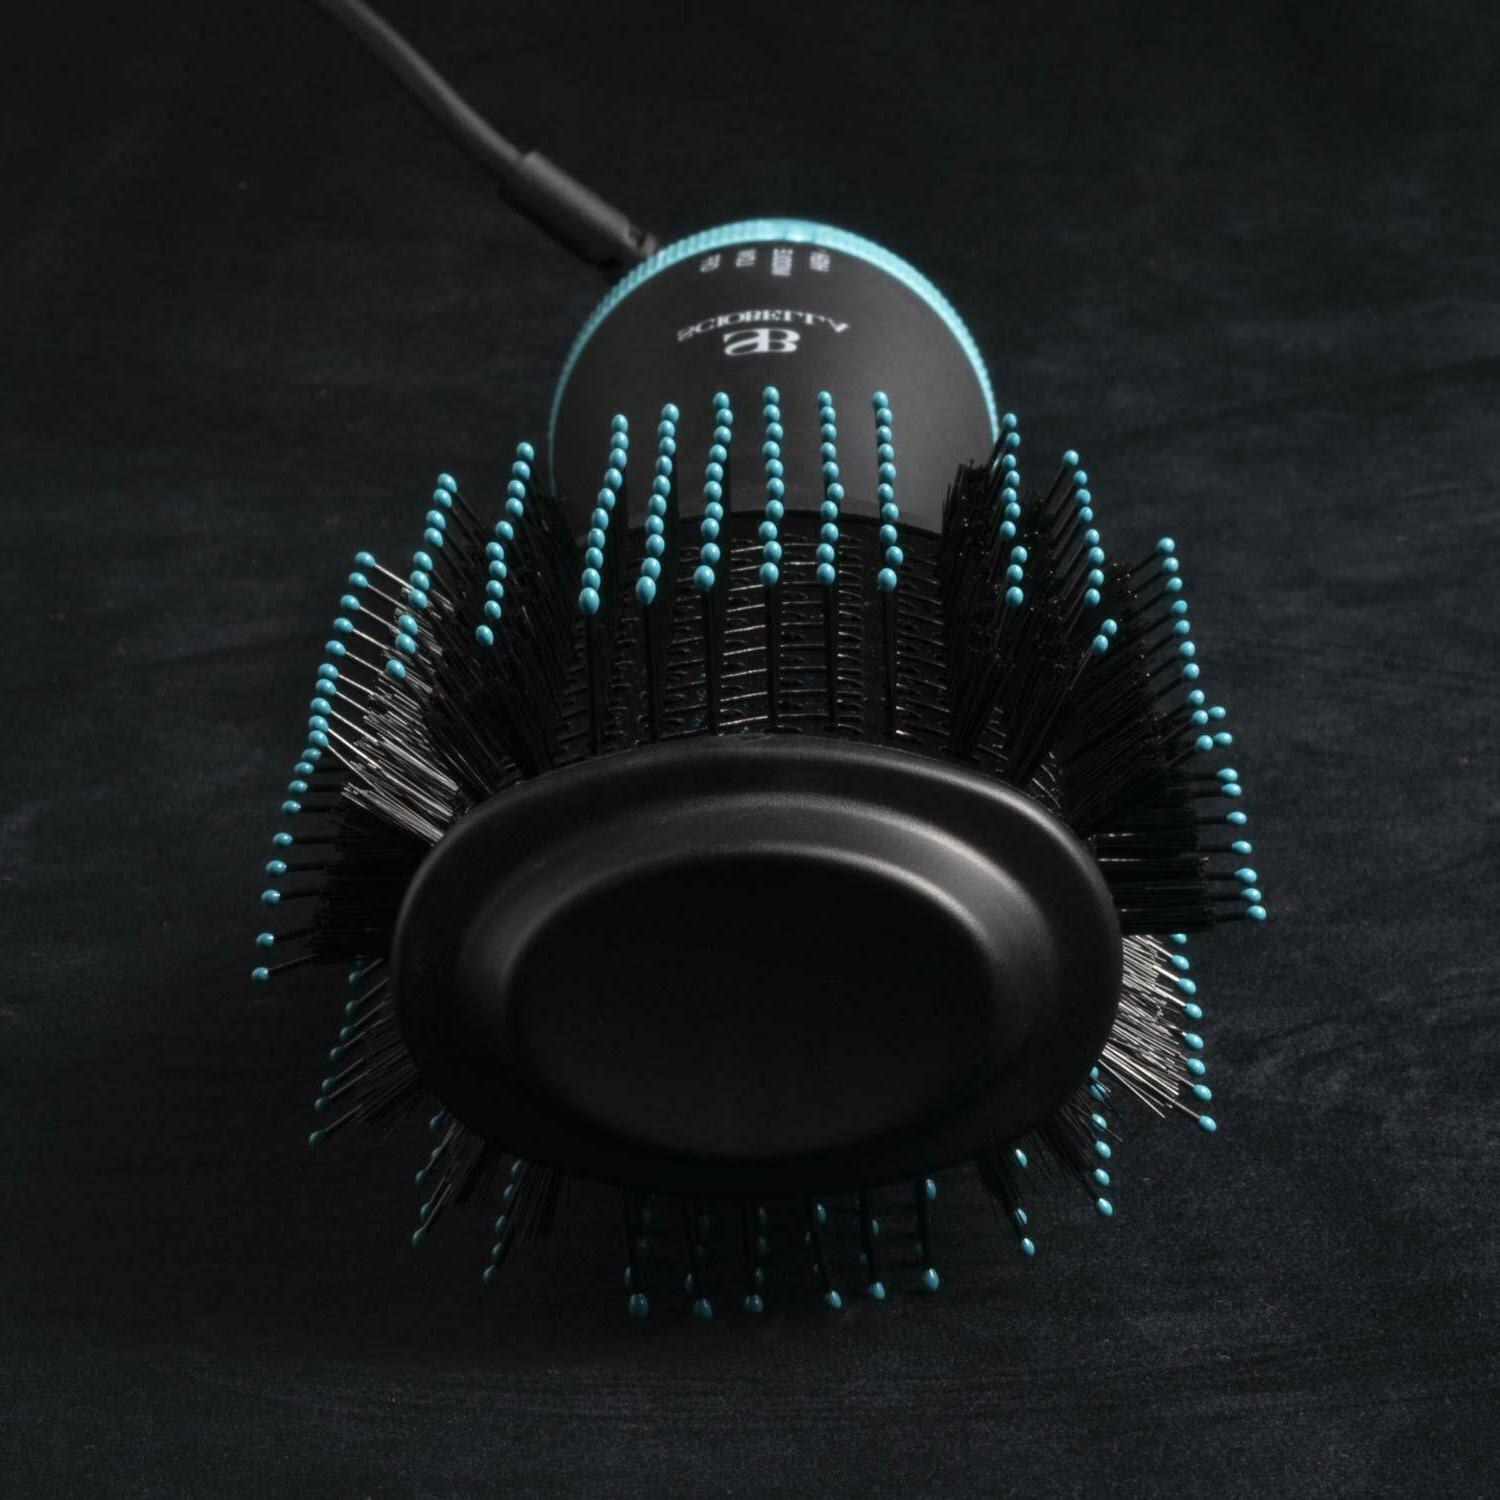 Hot Step Brush and 3 IN 1